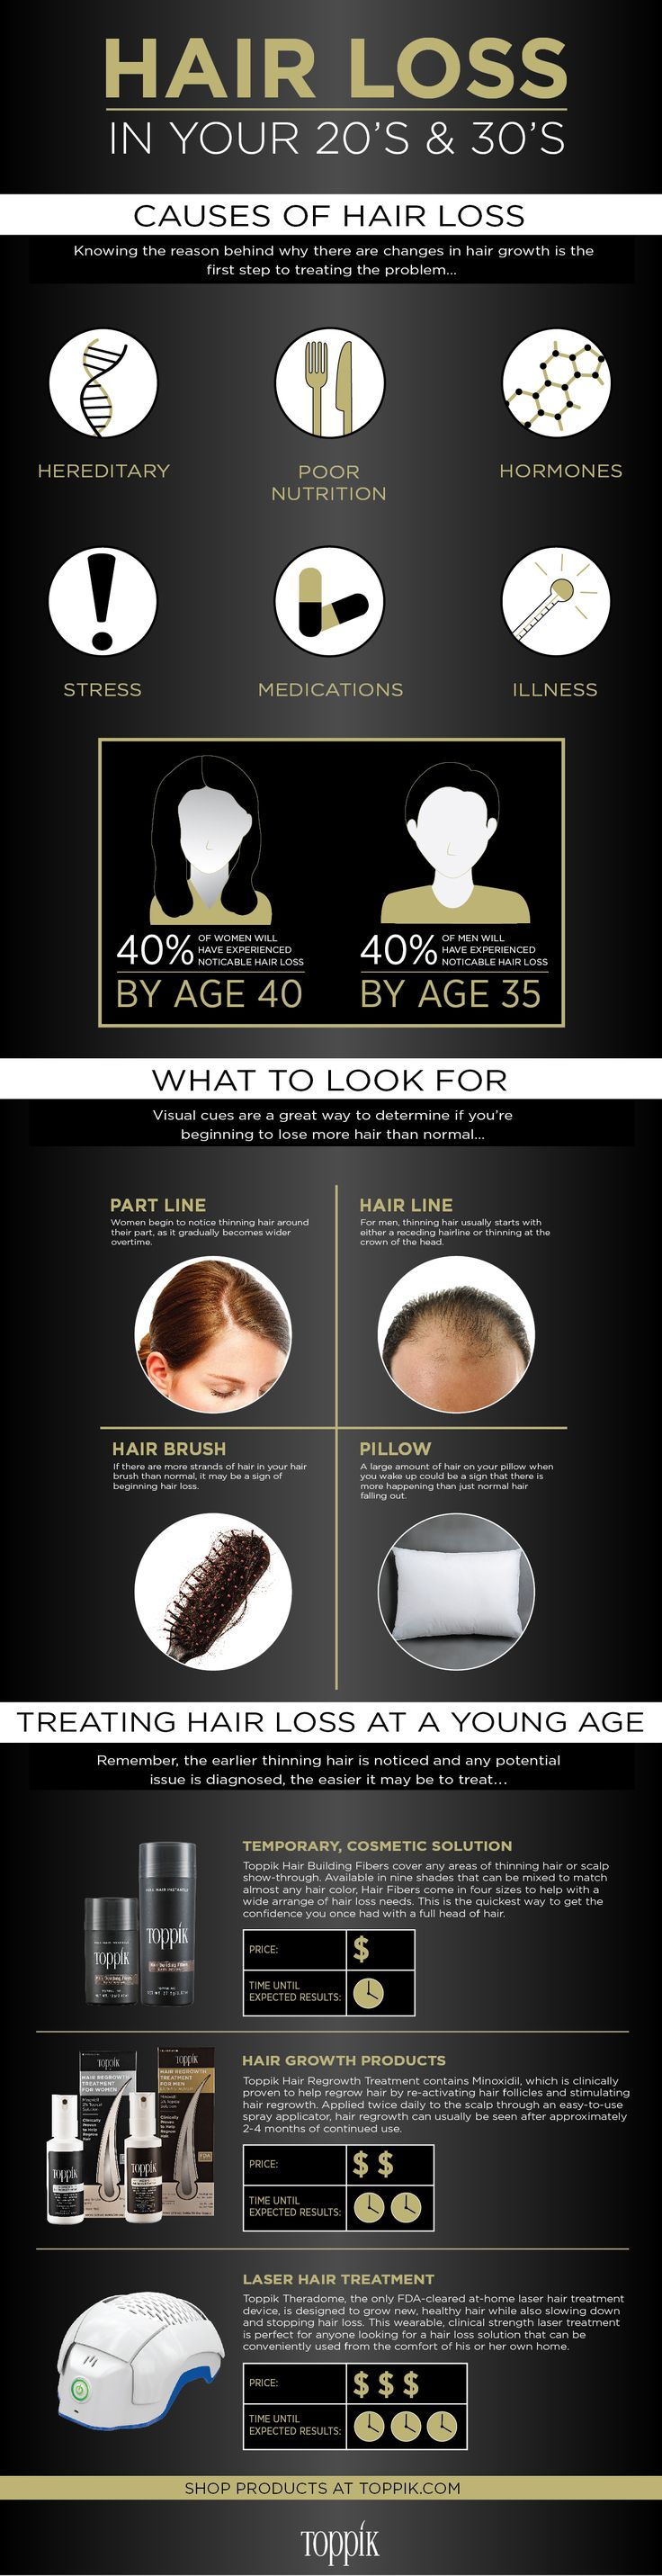 Thinning hair and hair loss affects people at various ages for a number of reasons. Find out about different hair loss cures and hair growth products here.